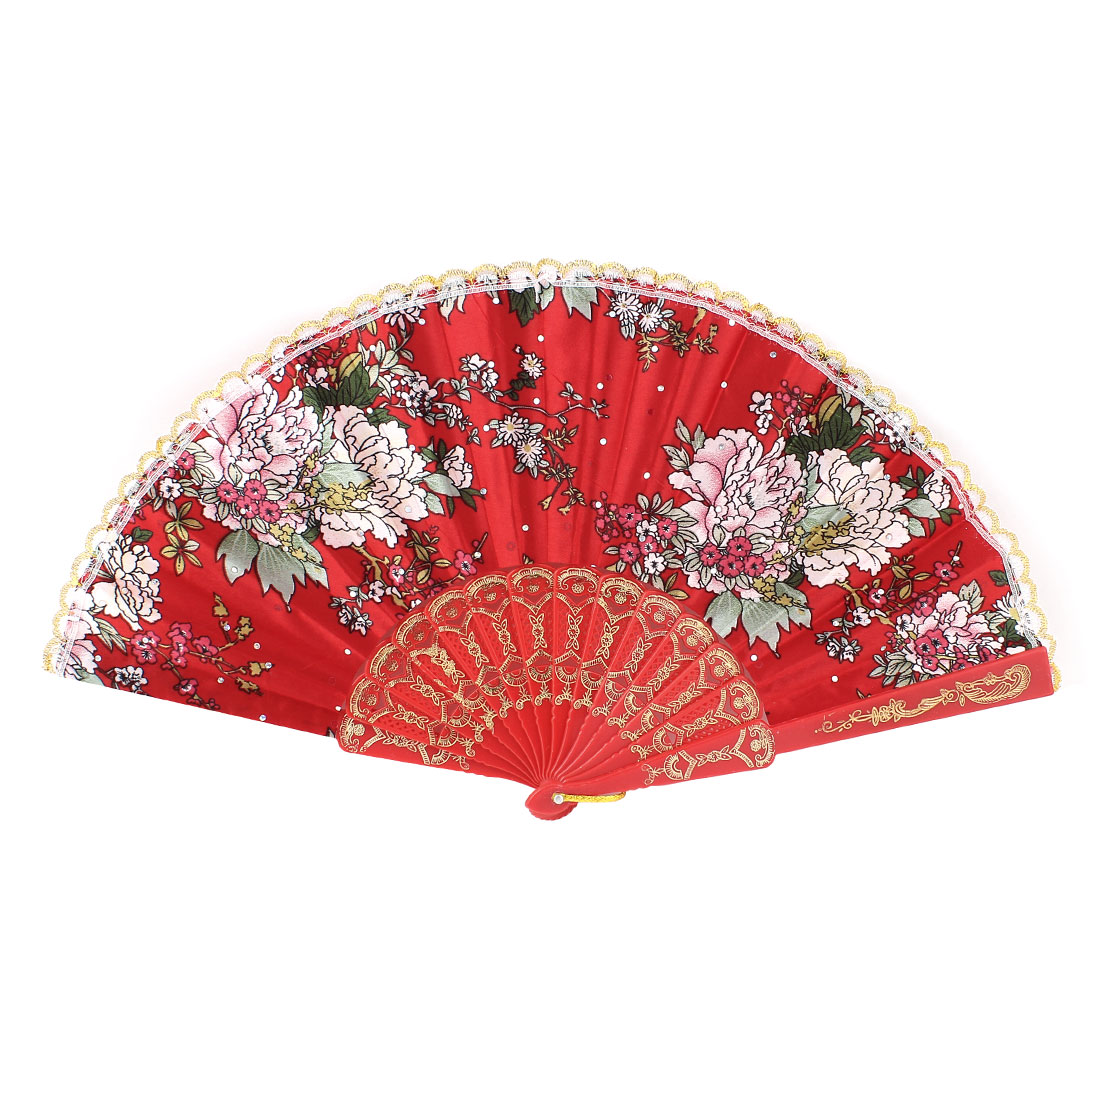 Summer Portable Carving Plastic Rib Blossom Pattern Red Cloth Folding Hand Fan for Party Dancing